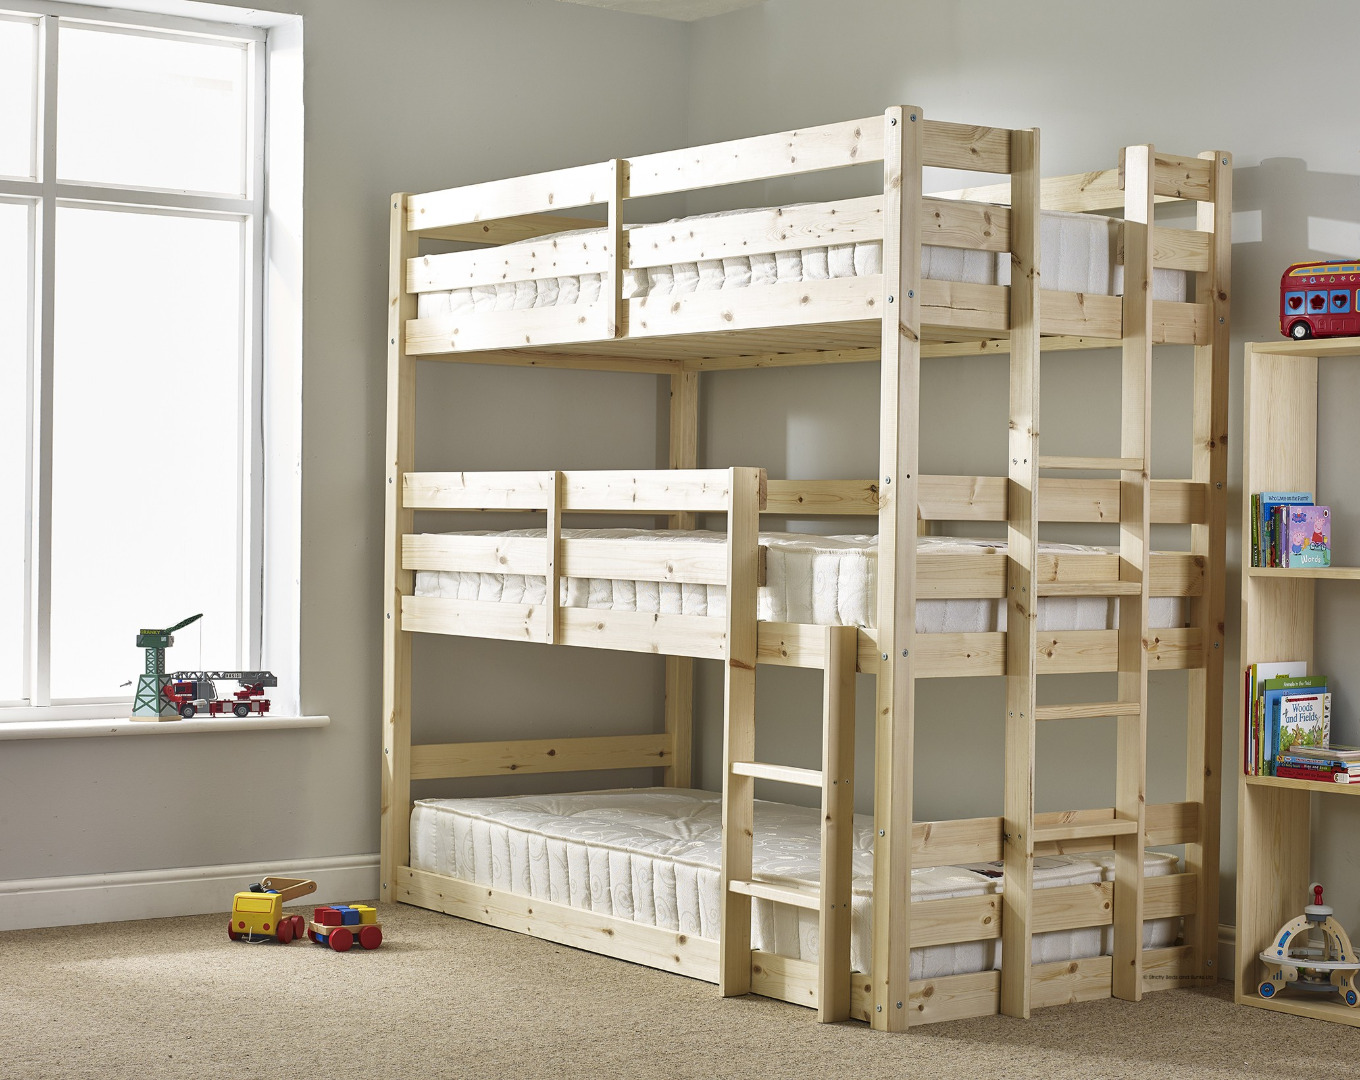 Triple bunk beds 3 high uk funtime triple bunk beds for Single bunk bed